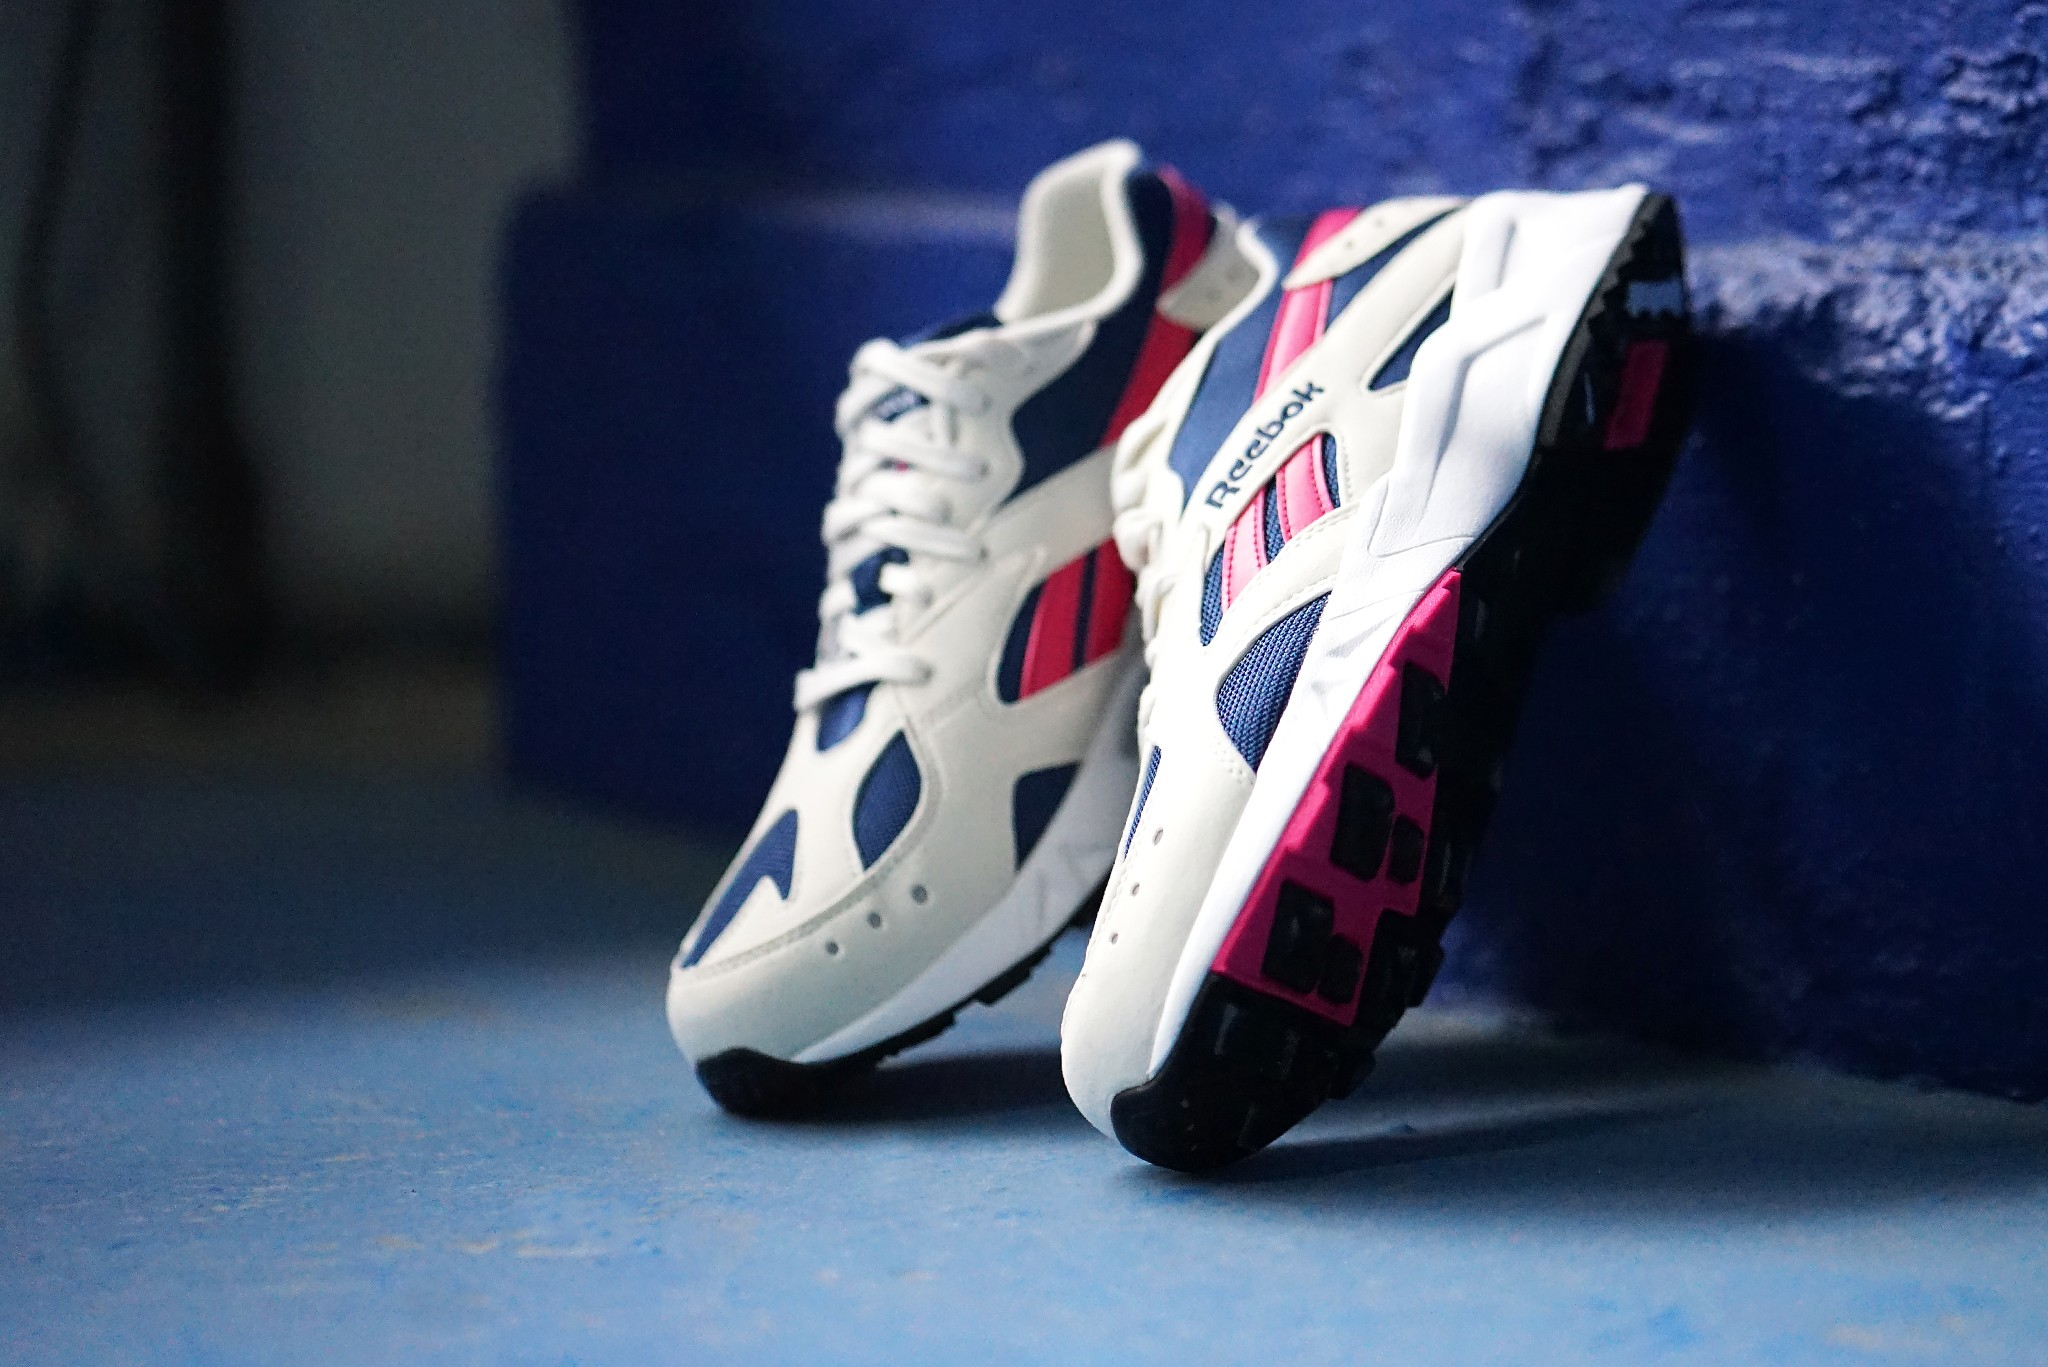 the return of Reebok Aztrek in two og colorways